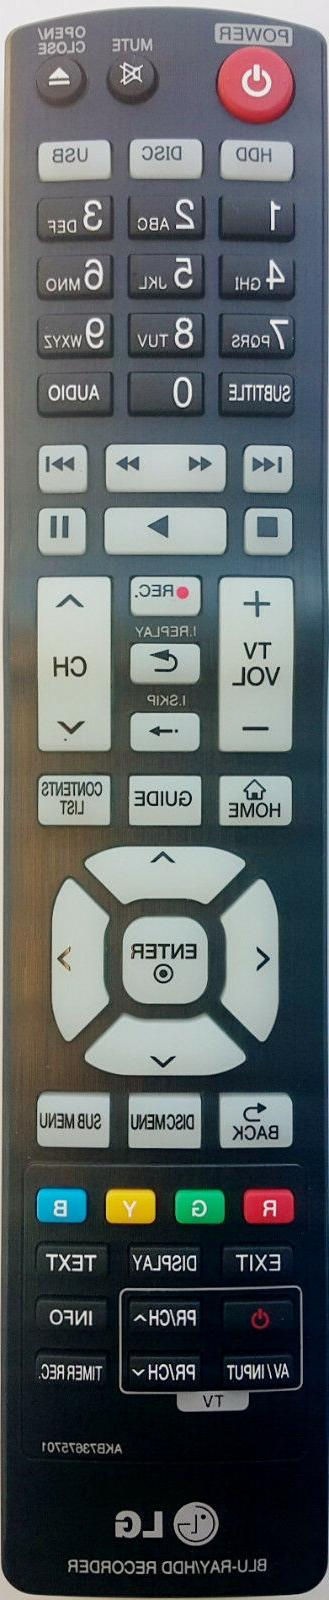 genuine remote control akb73675701 suits br625t br629t